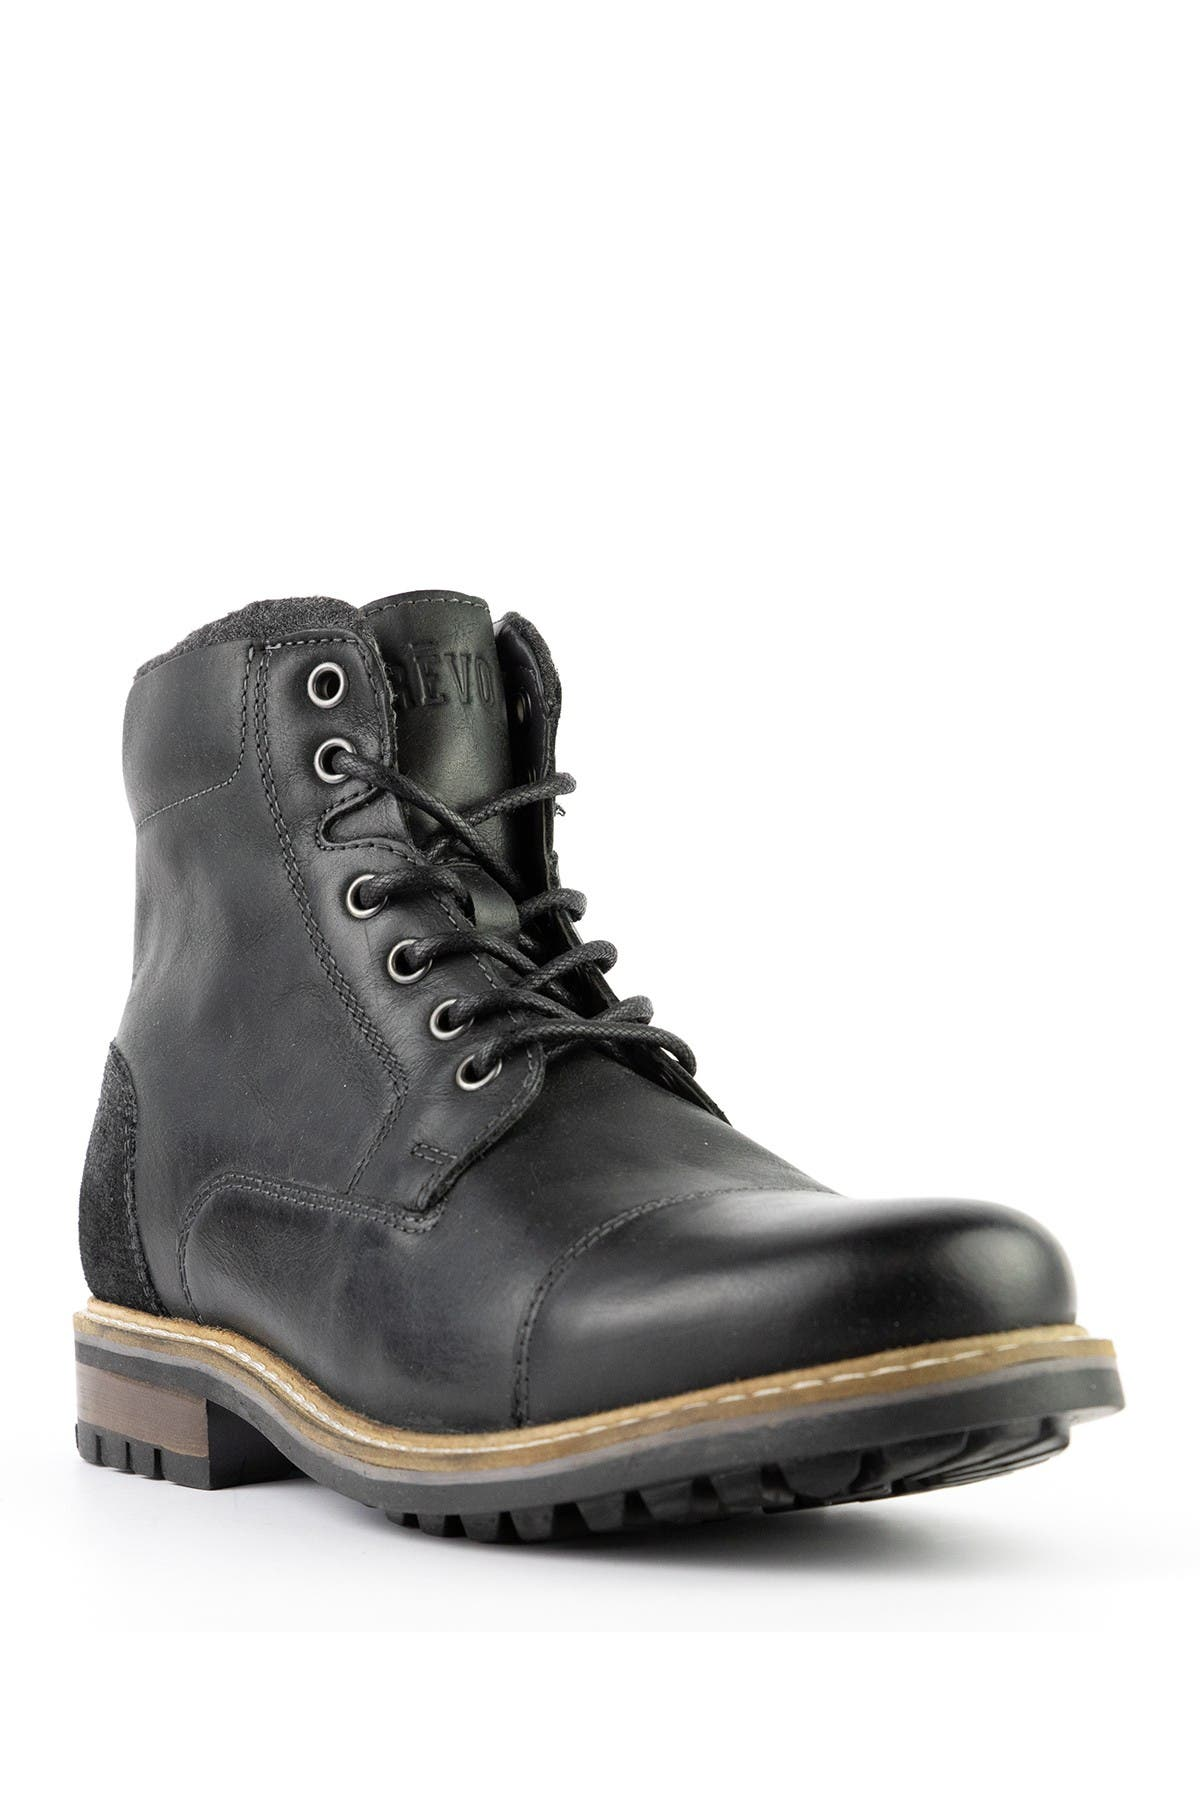 Image of Crevo Hammersmith Lace-Up Boot